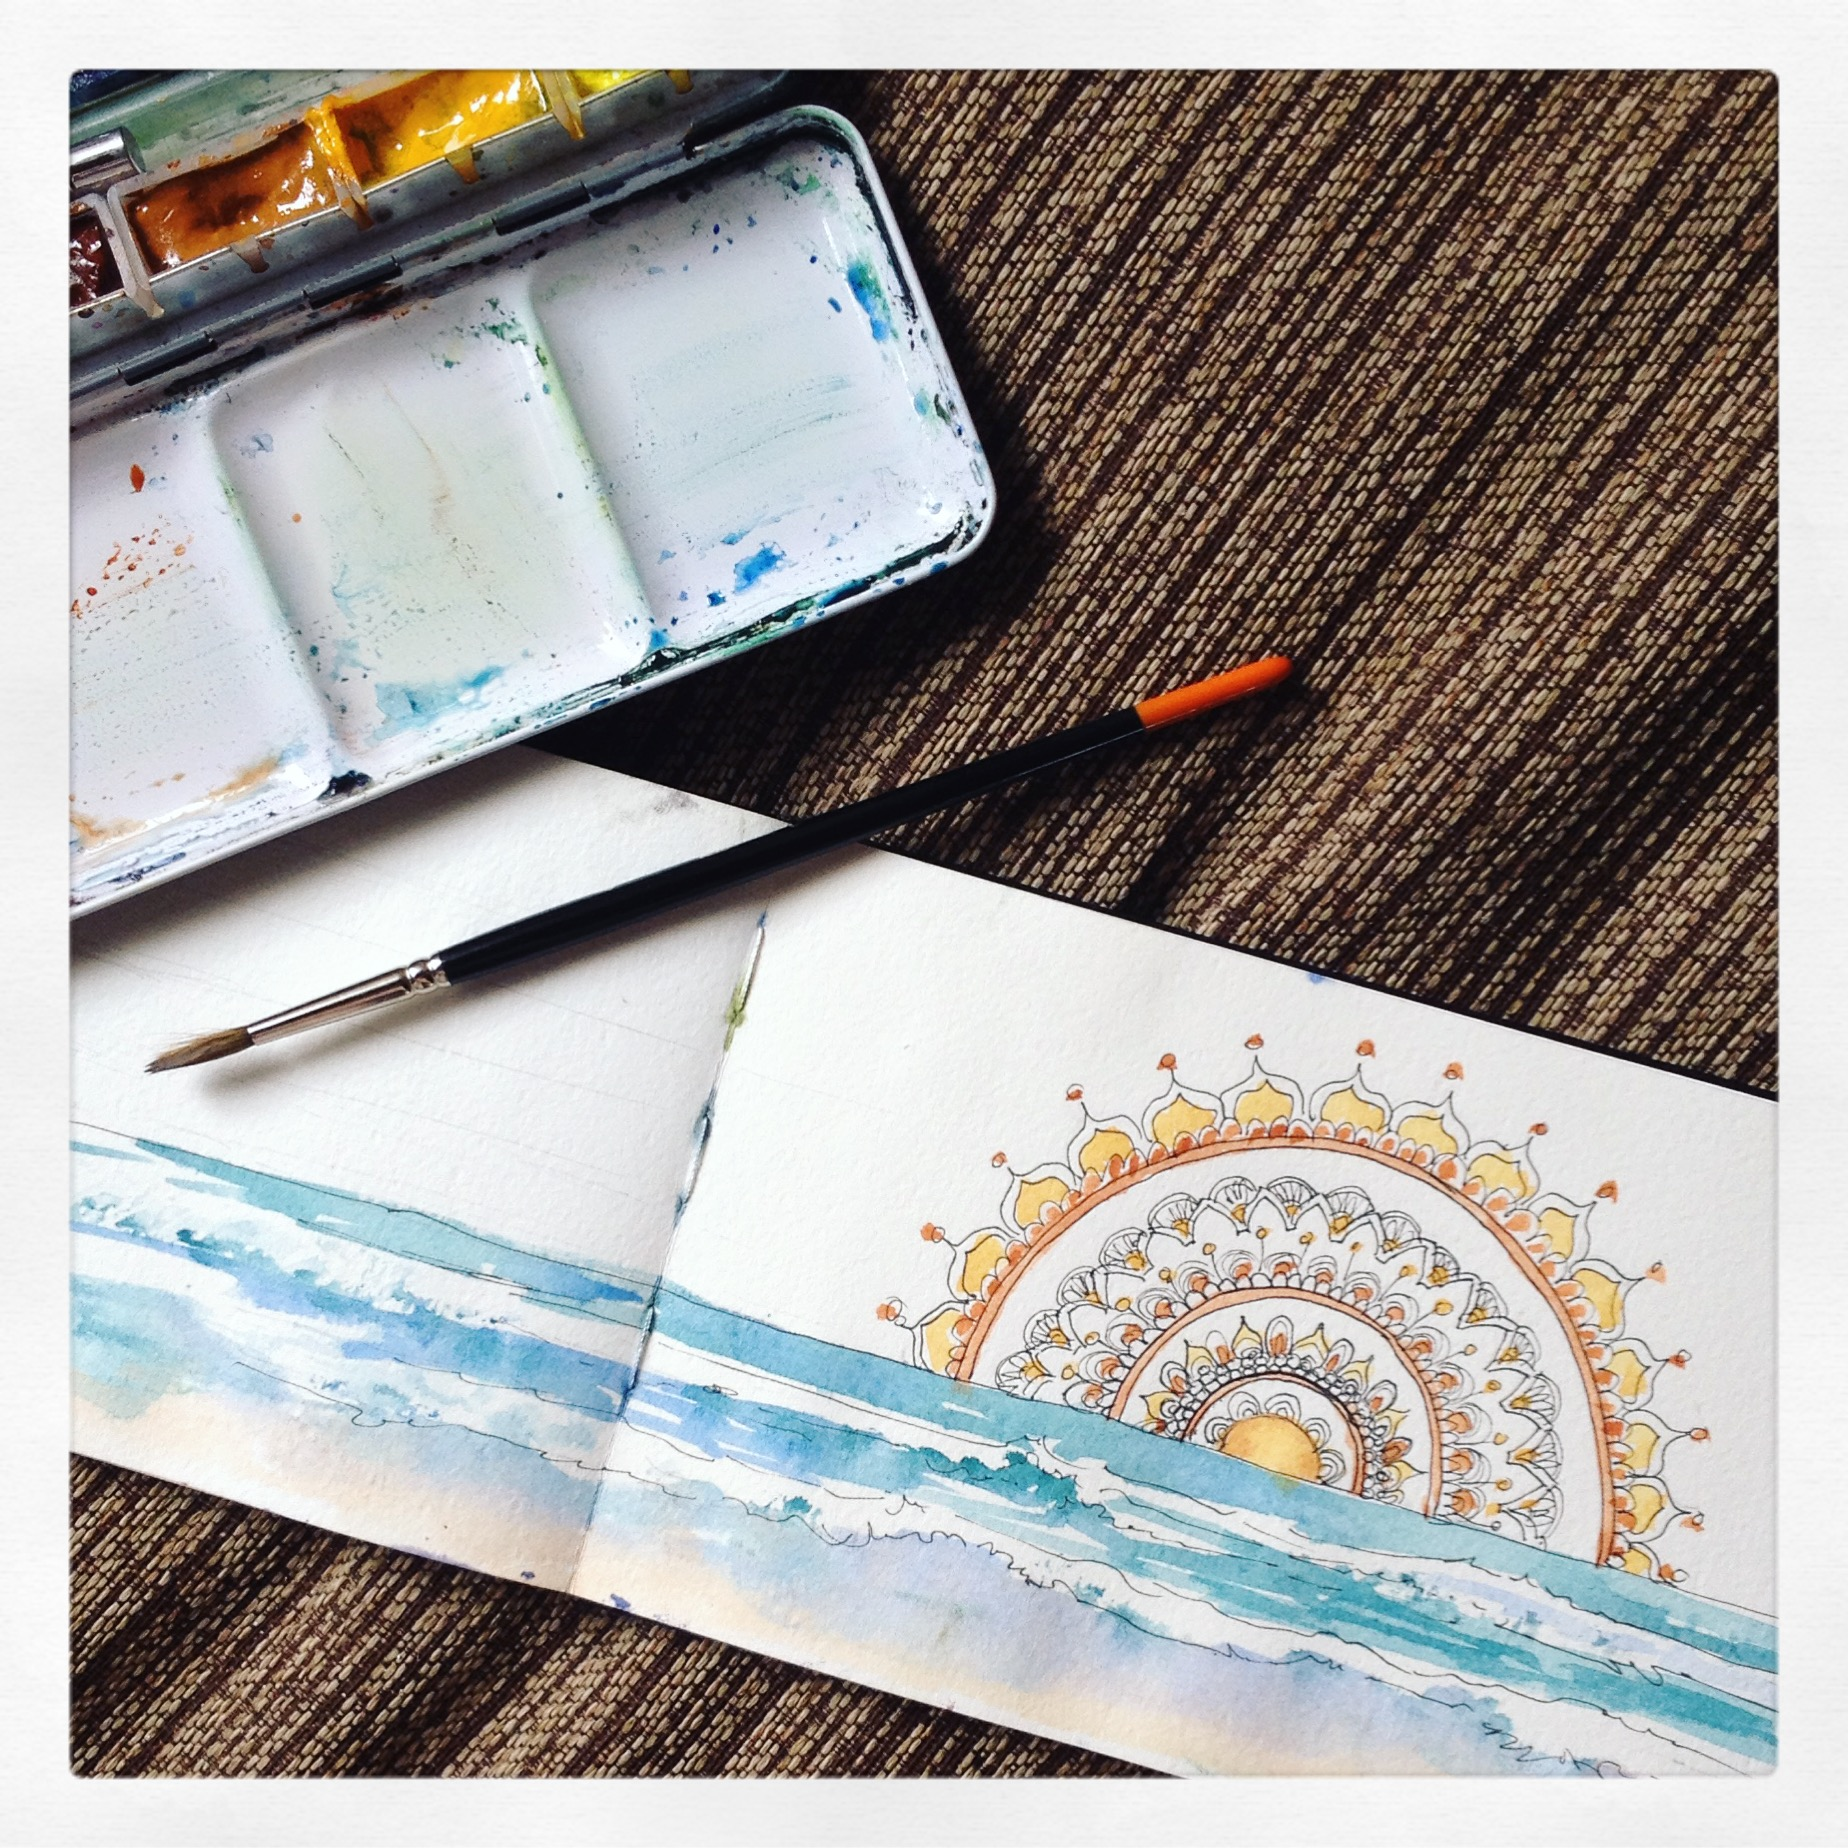 Watercolour Illustration our mural in the Yoga studio rising above our view of the water...